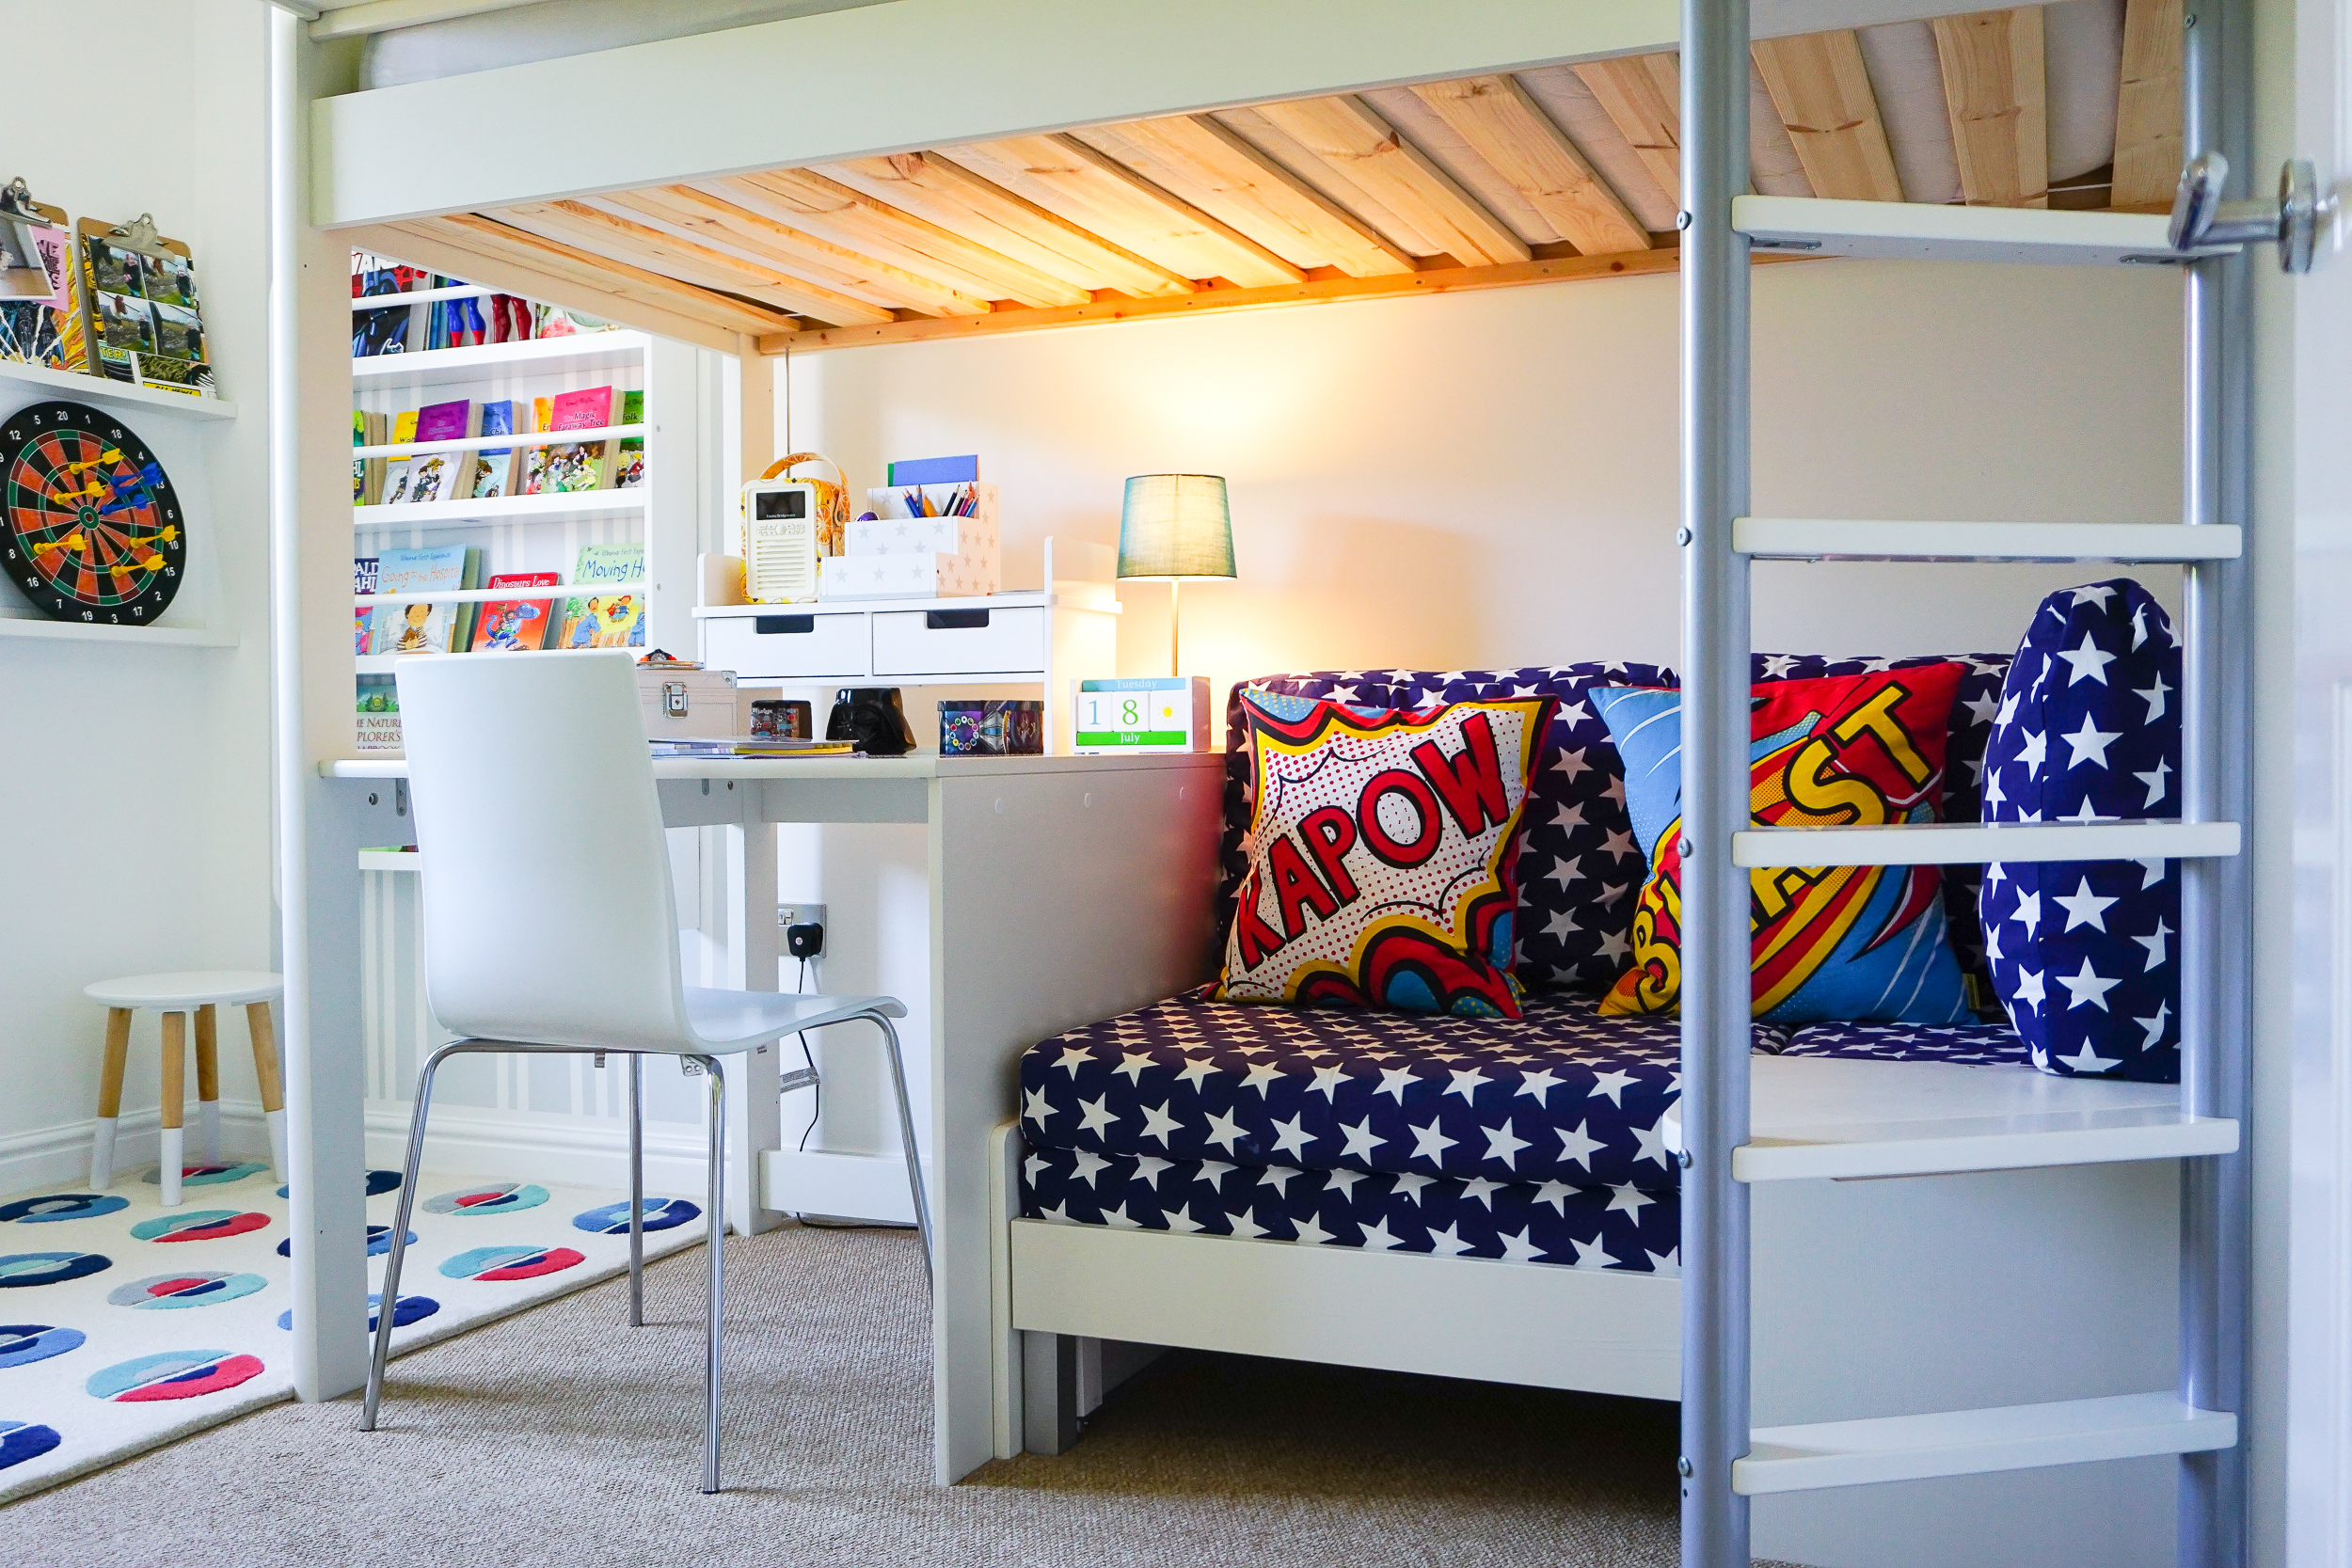 Creating the perfect children's bedroom